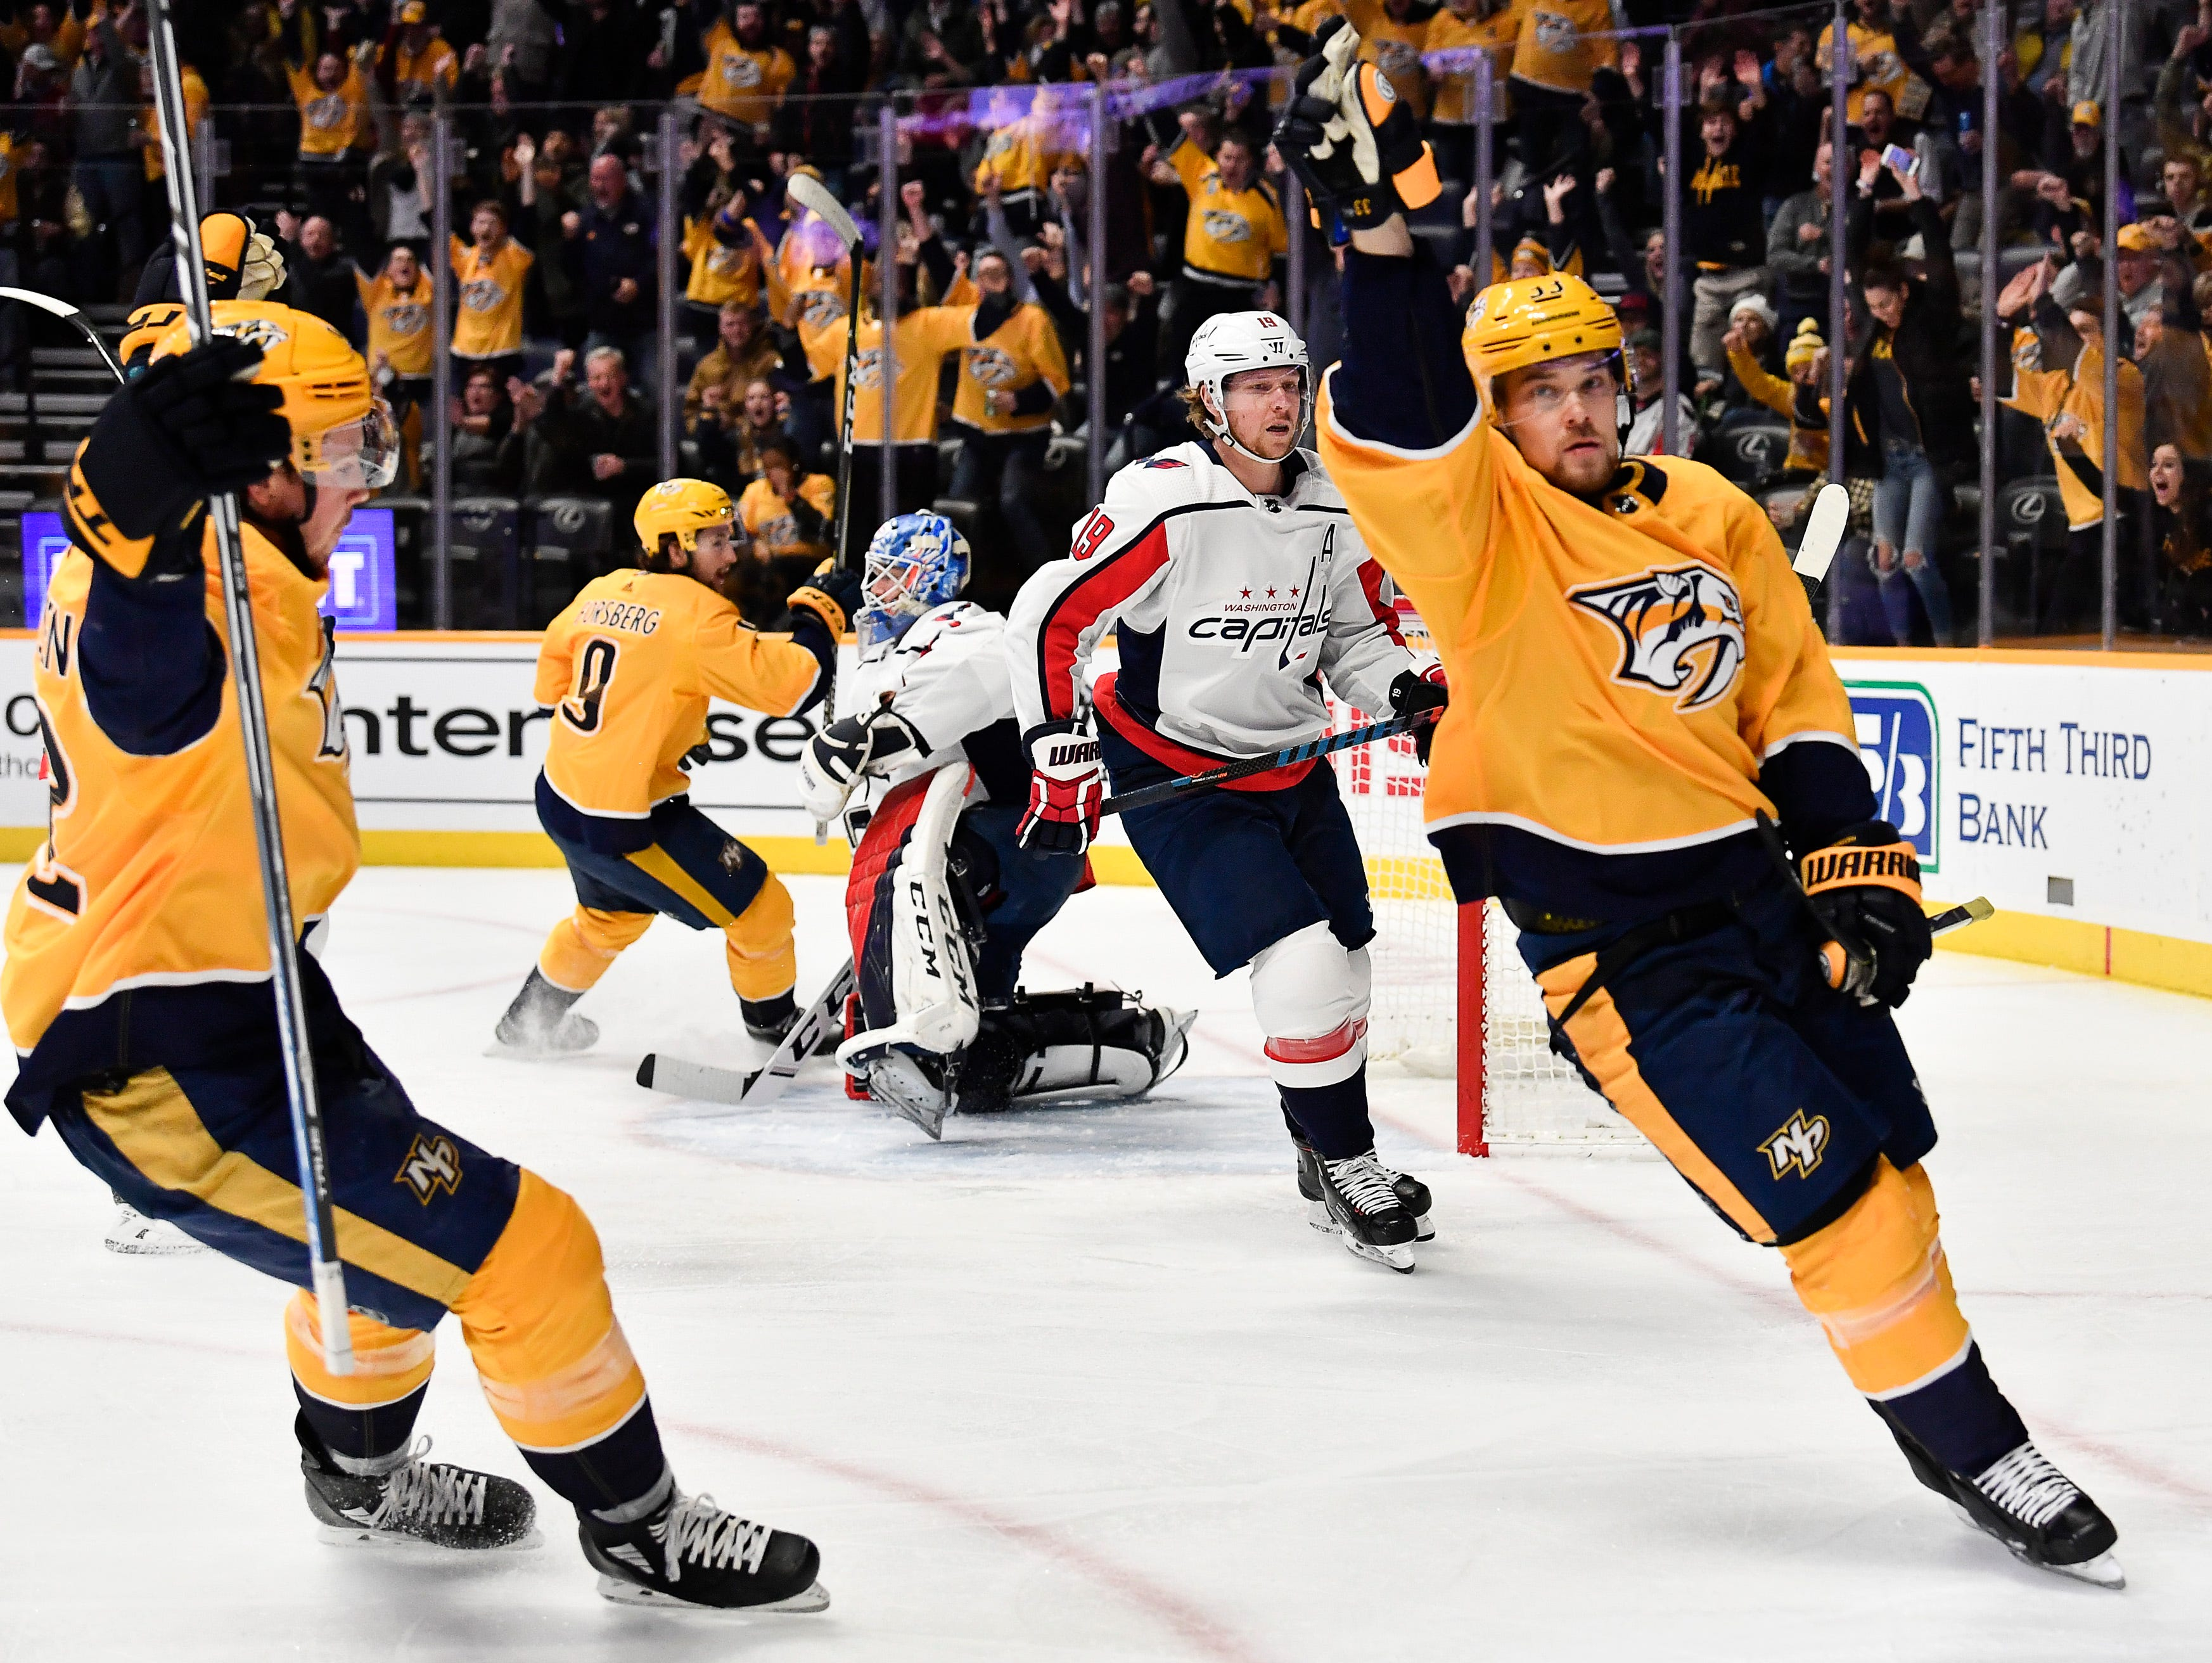 Predators right wing Viktor Arvidsson (33) celebrates his goal against the Capitals during the first period at Bridgestone Arena Tuesday, Jan. 15, 2019, in Nashville, Tenn.